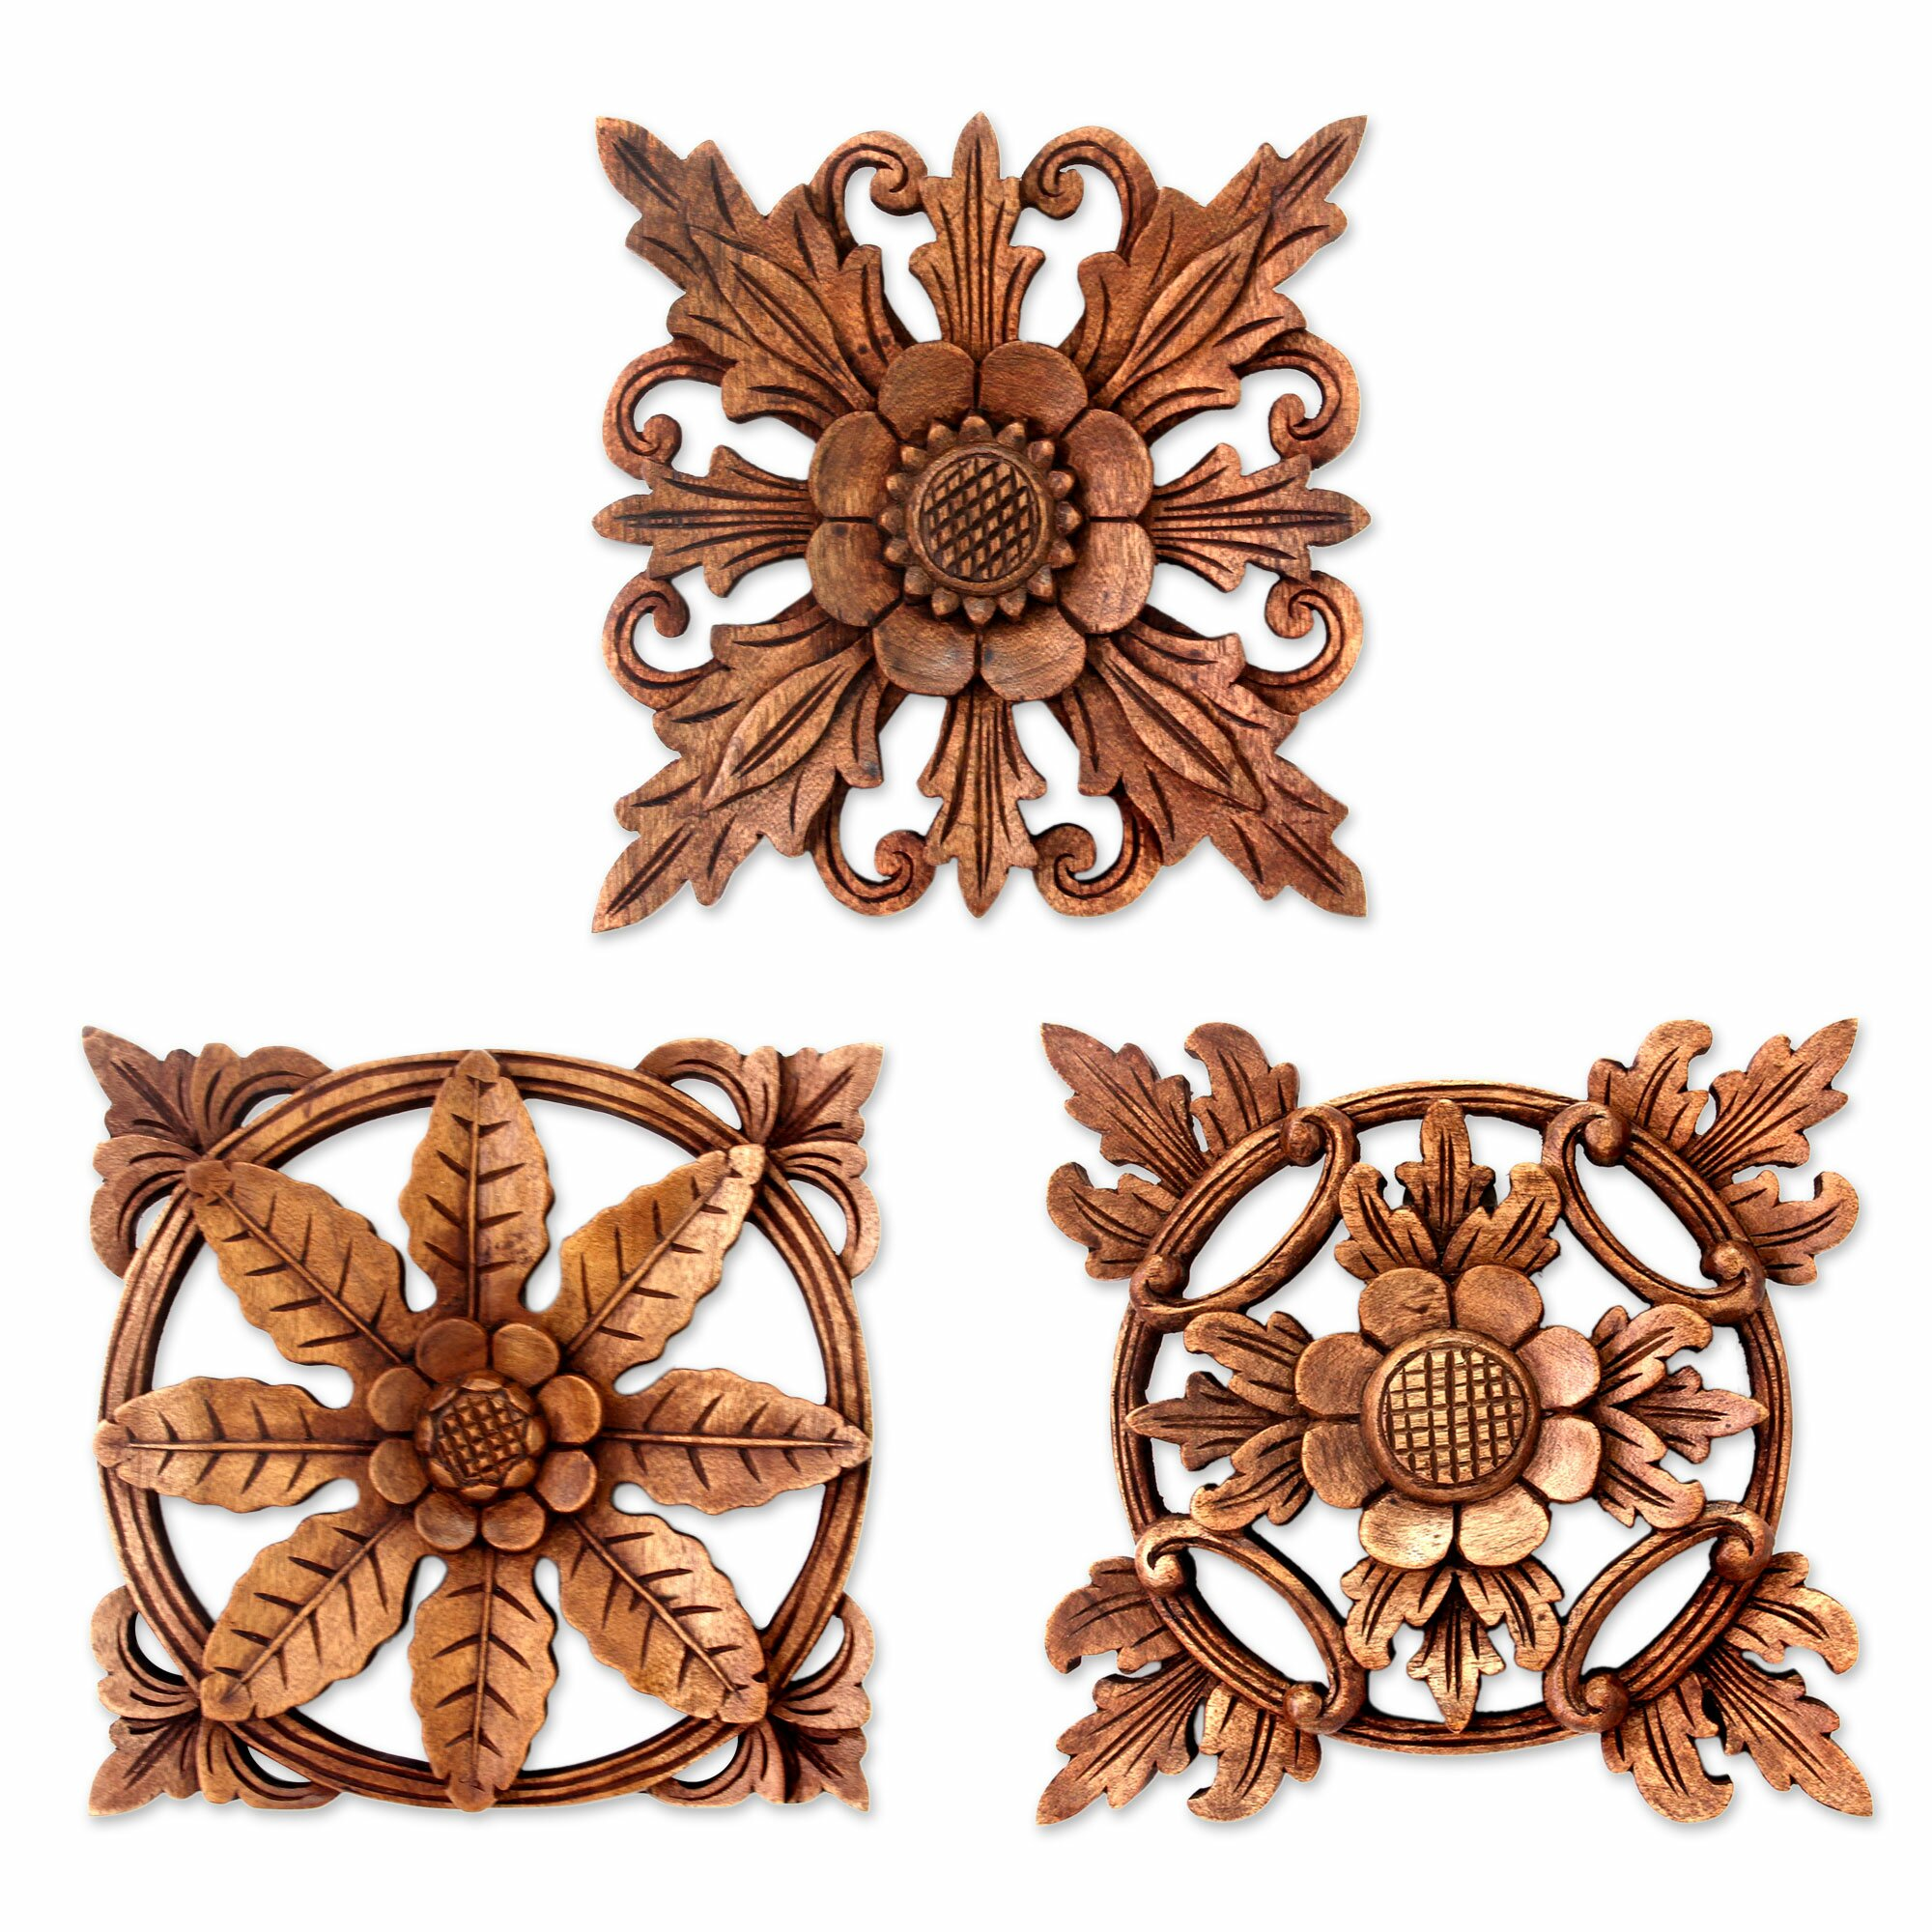 Wood Carved Wall Decor Novica 3 Piece Balinese Hand Carved Wood Floral Relief Panels Wall